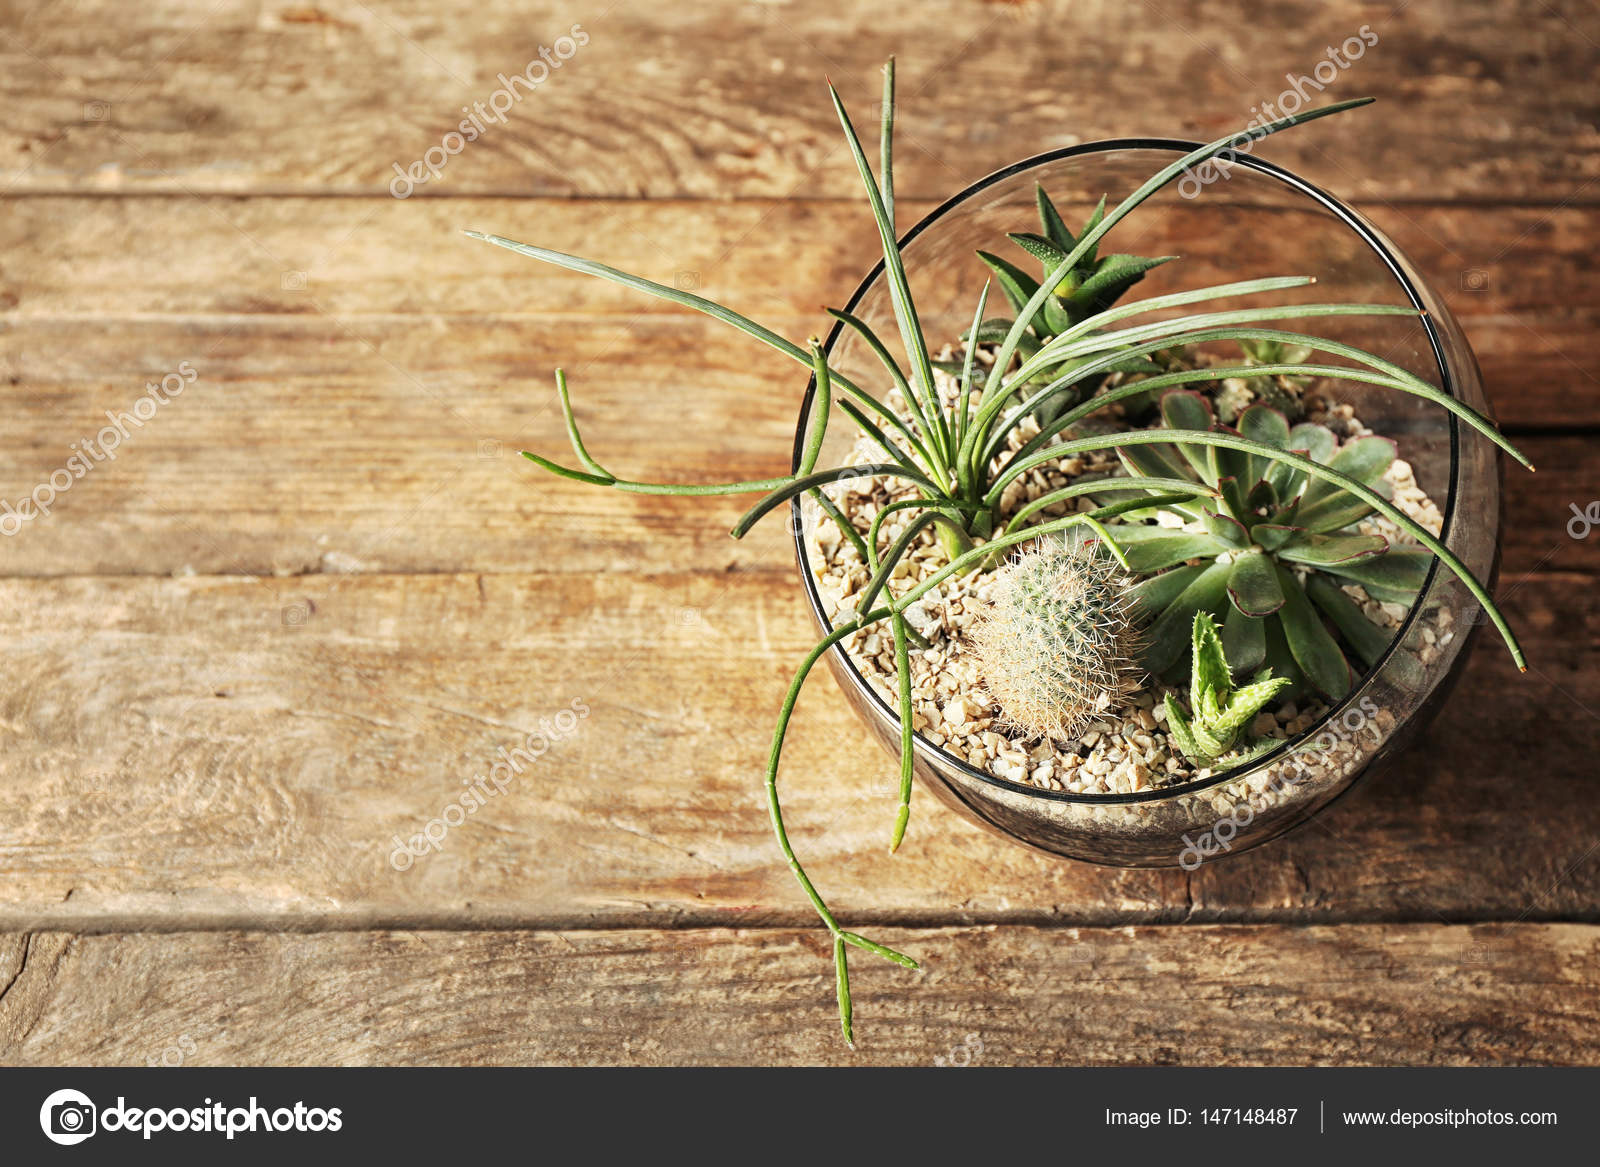 composition de plantes grasses en pot de verre — photographie